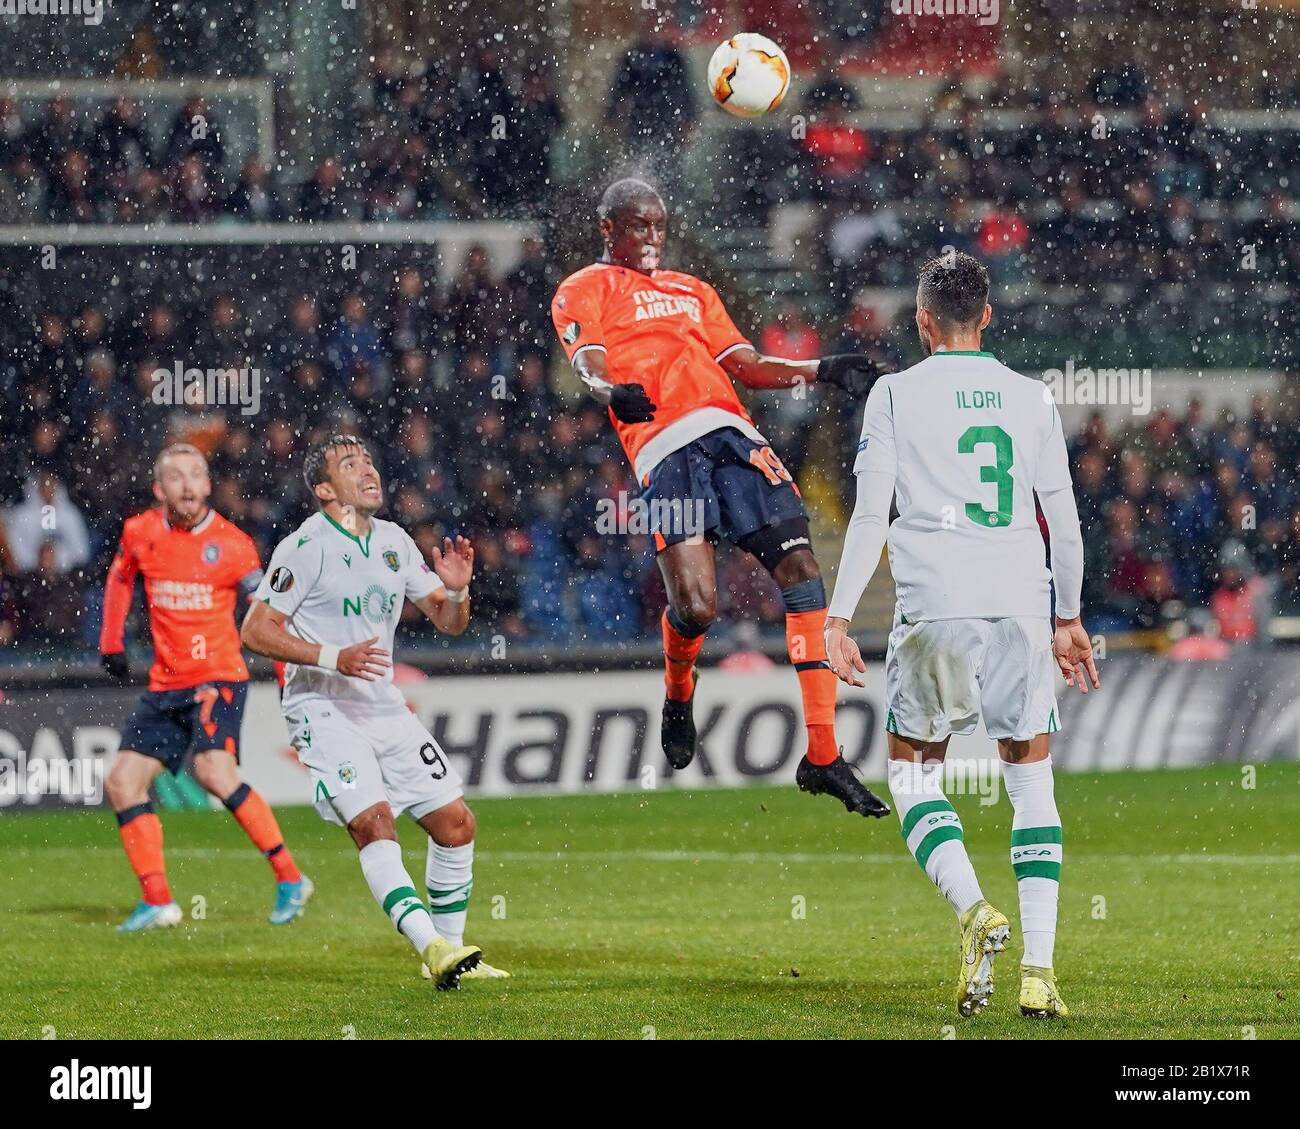 demba ba high resolution stock photography and images alamy https www alamy com february 27 2020 demba ba of istanbul basaksehir fk heading the ball during istanbul baakehir and sporting cp on baakehir fatih terim stadium istanbul turkey kim pricecsm image345398307 html